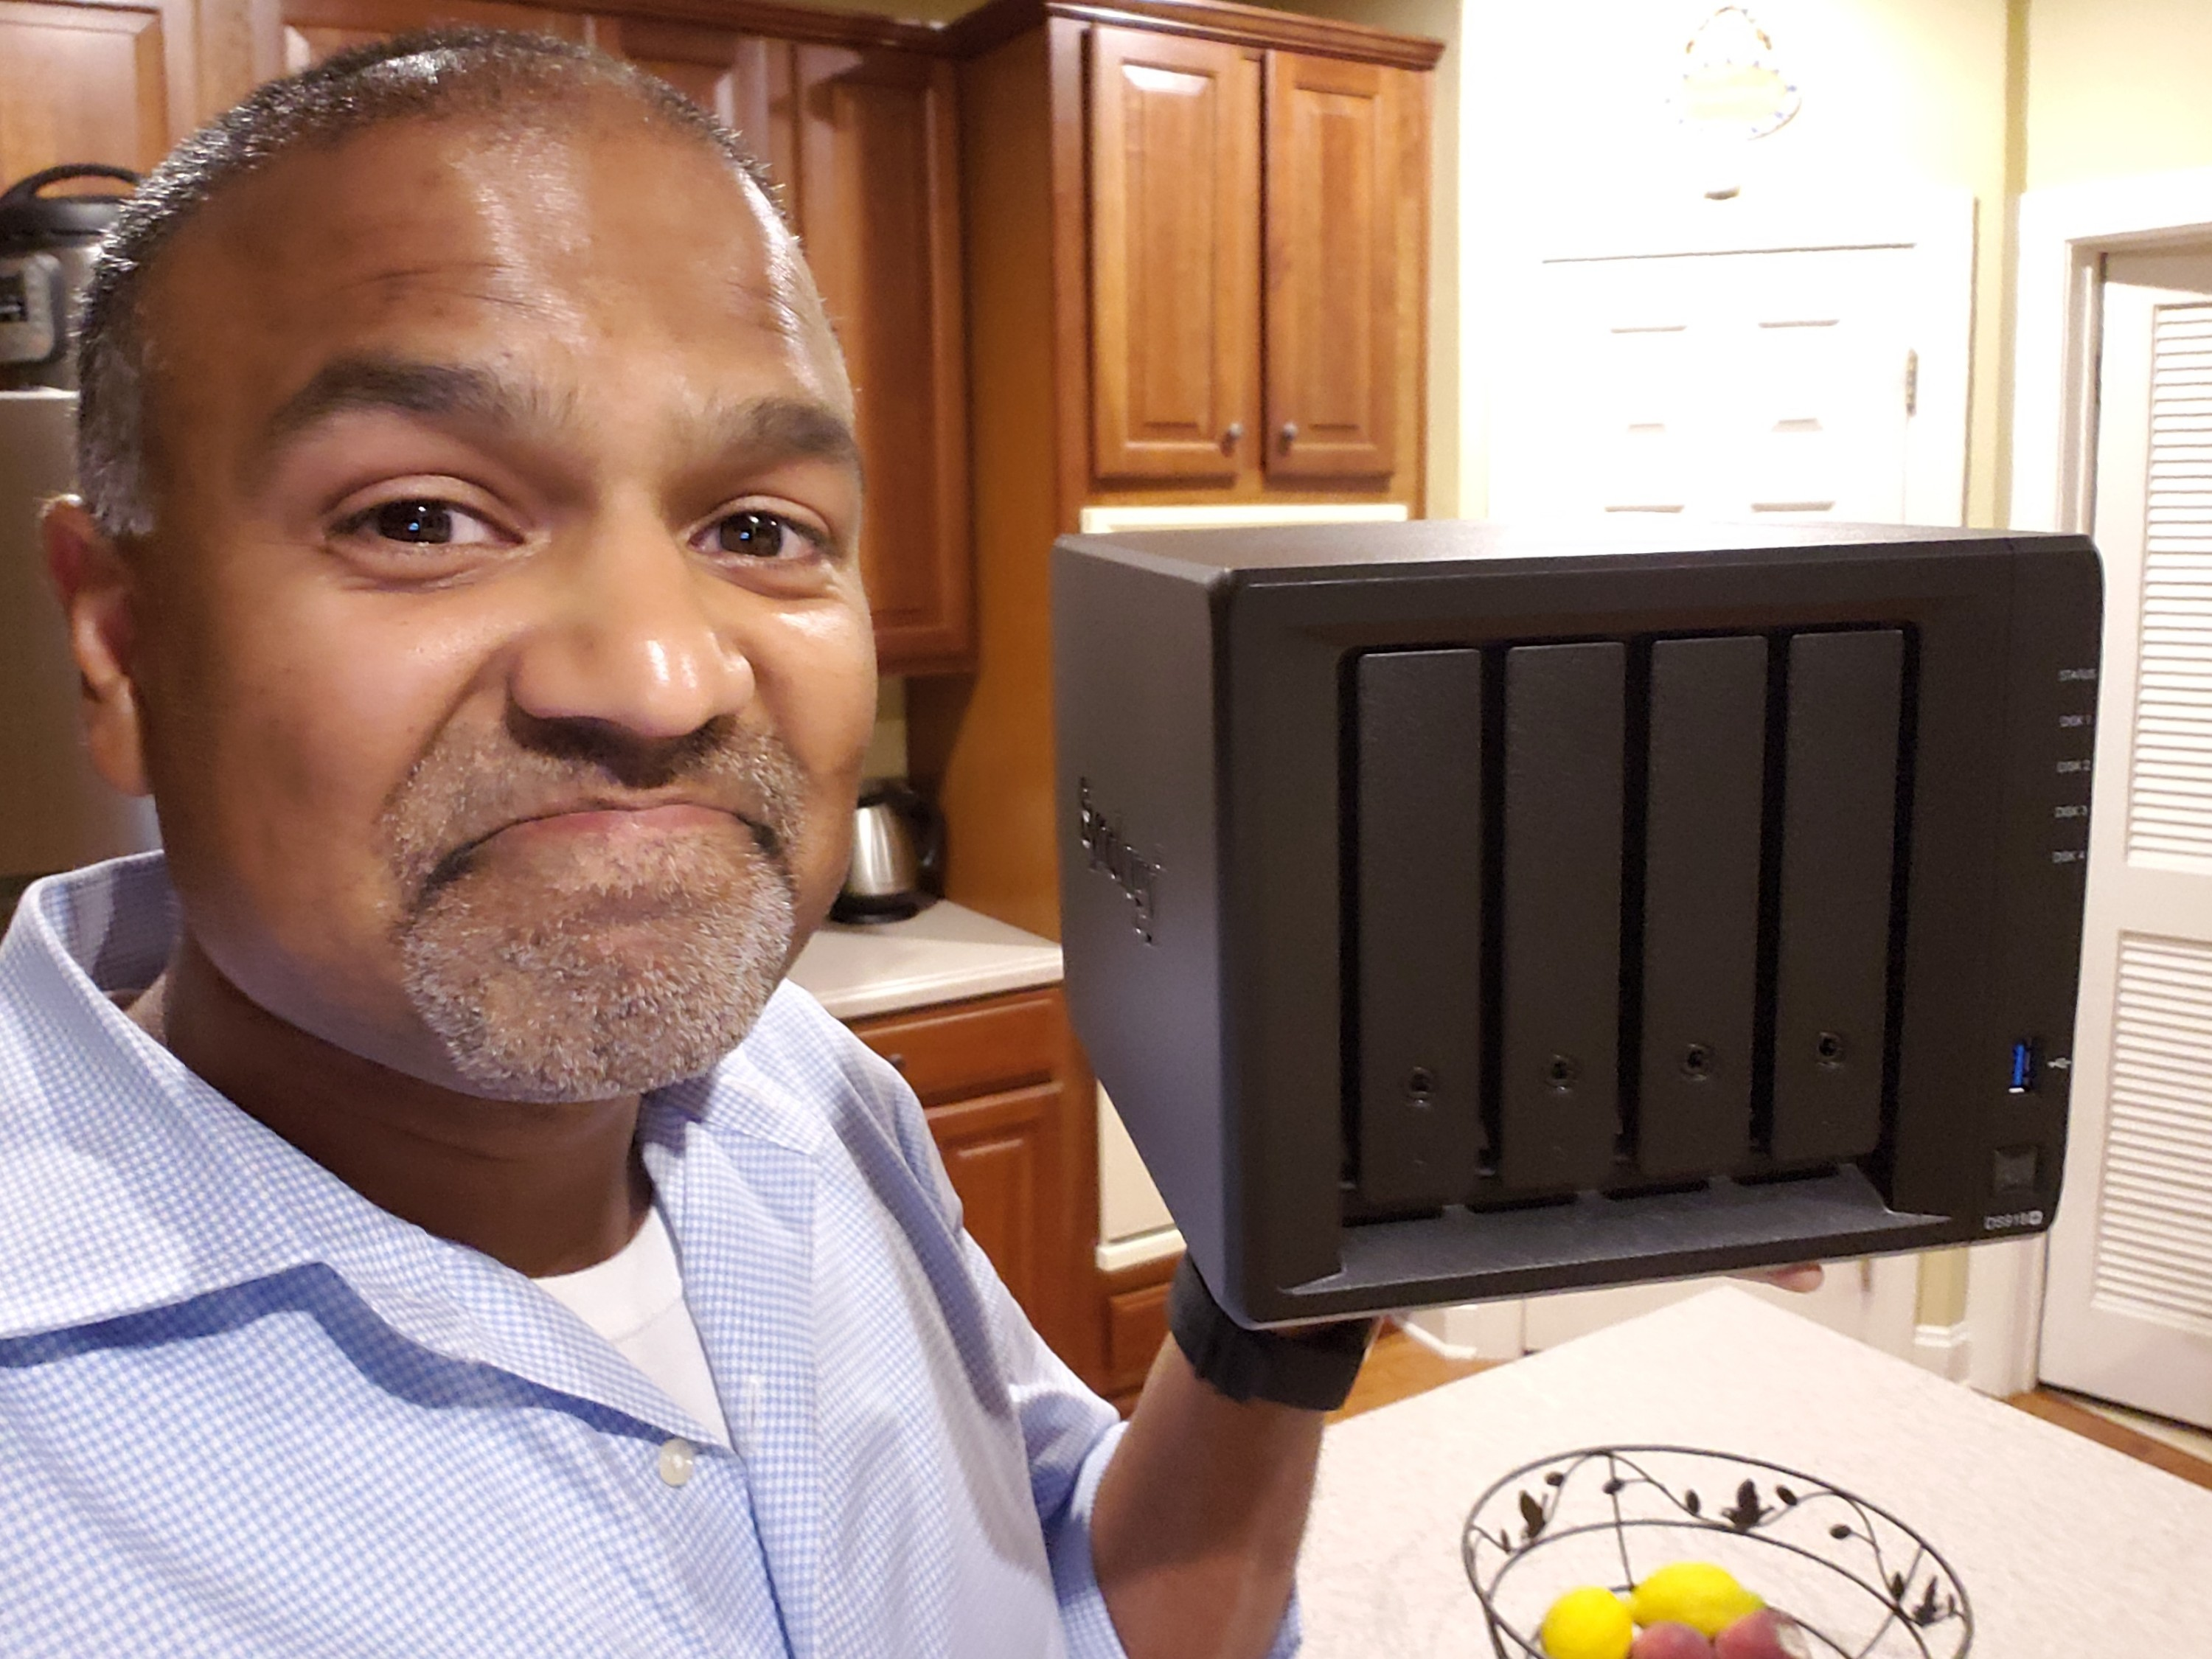 I'm building a new Plex / media server using a Synology DS918+ and